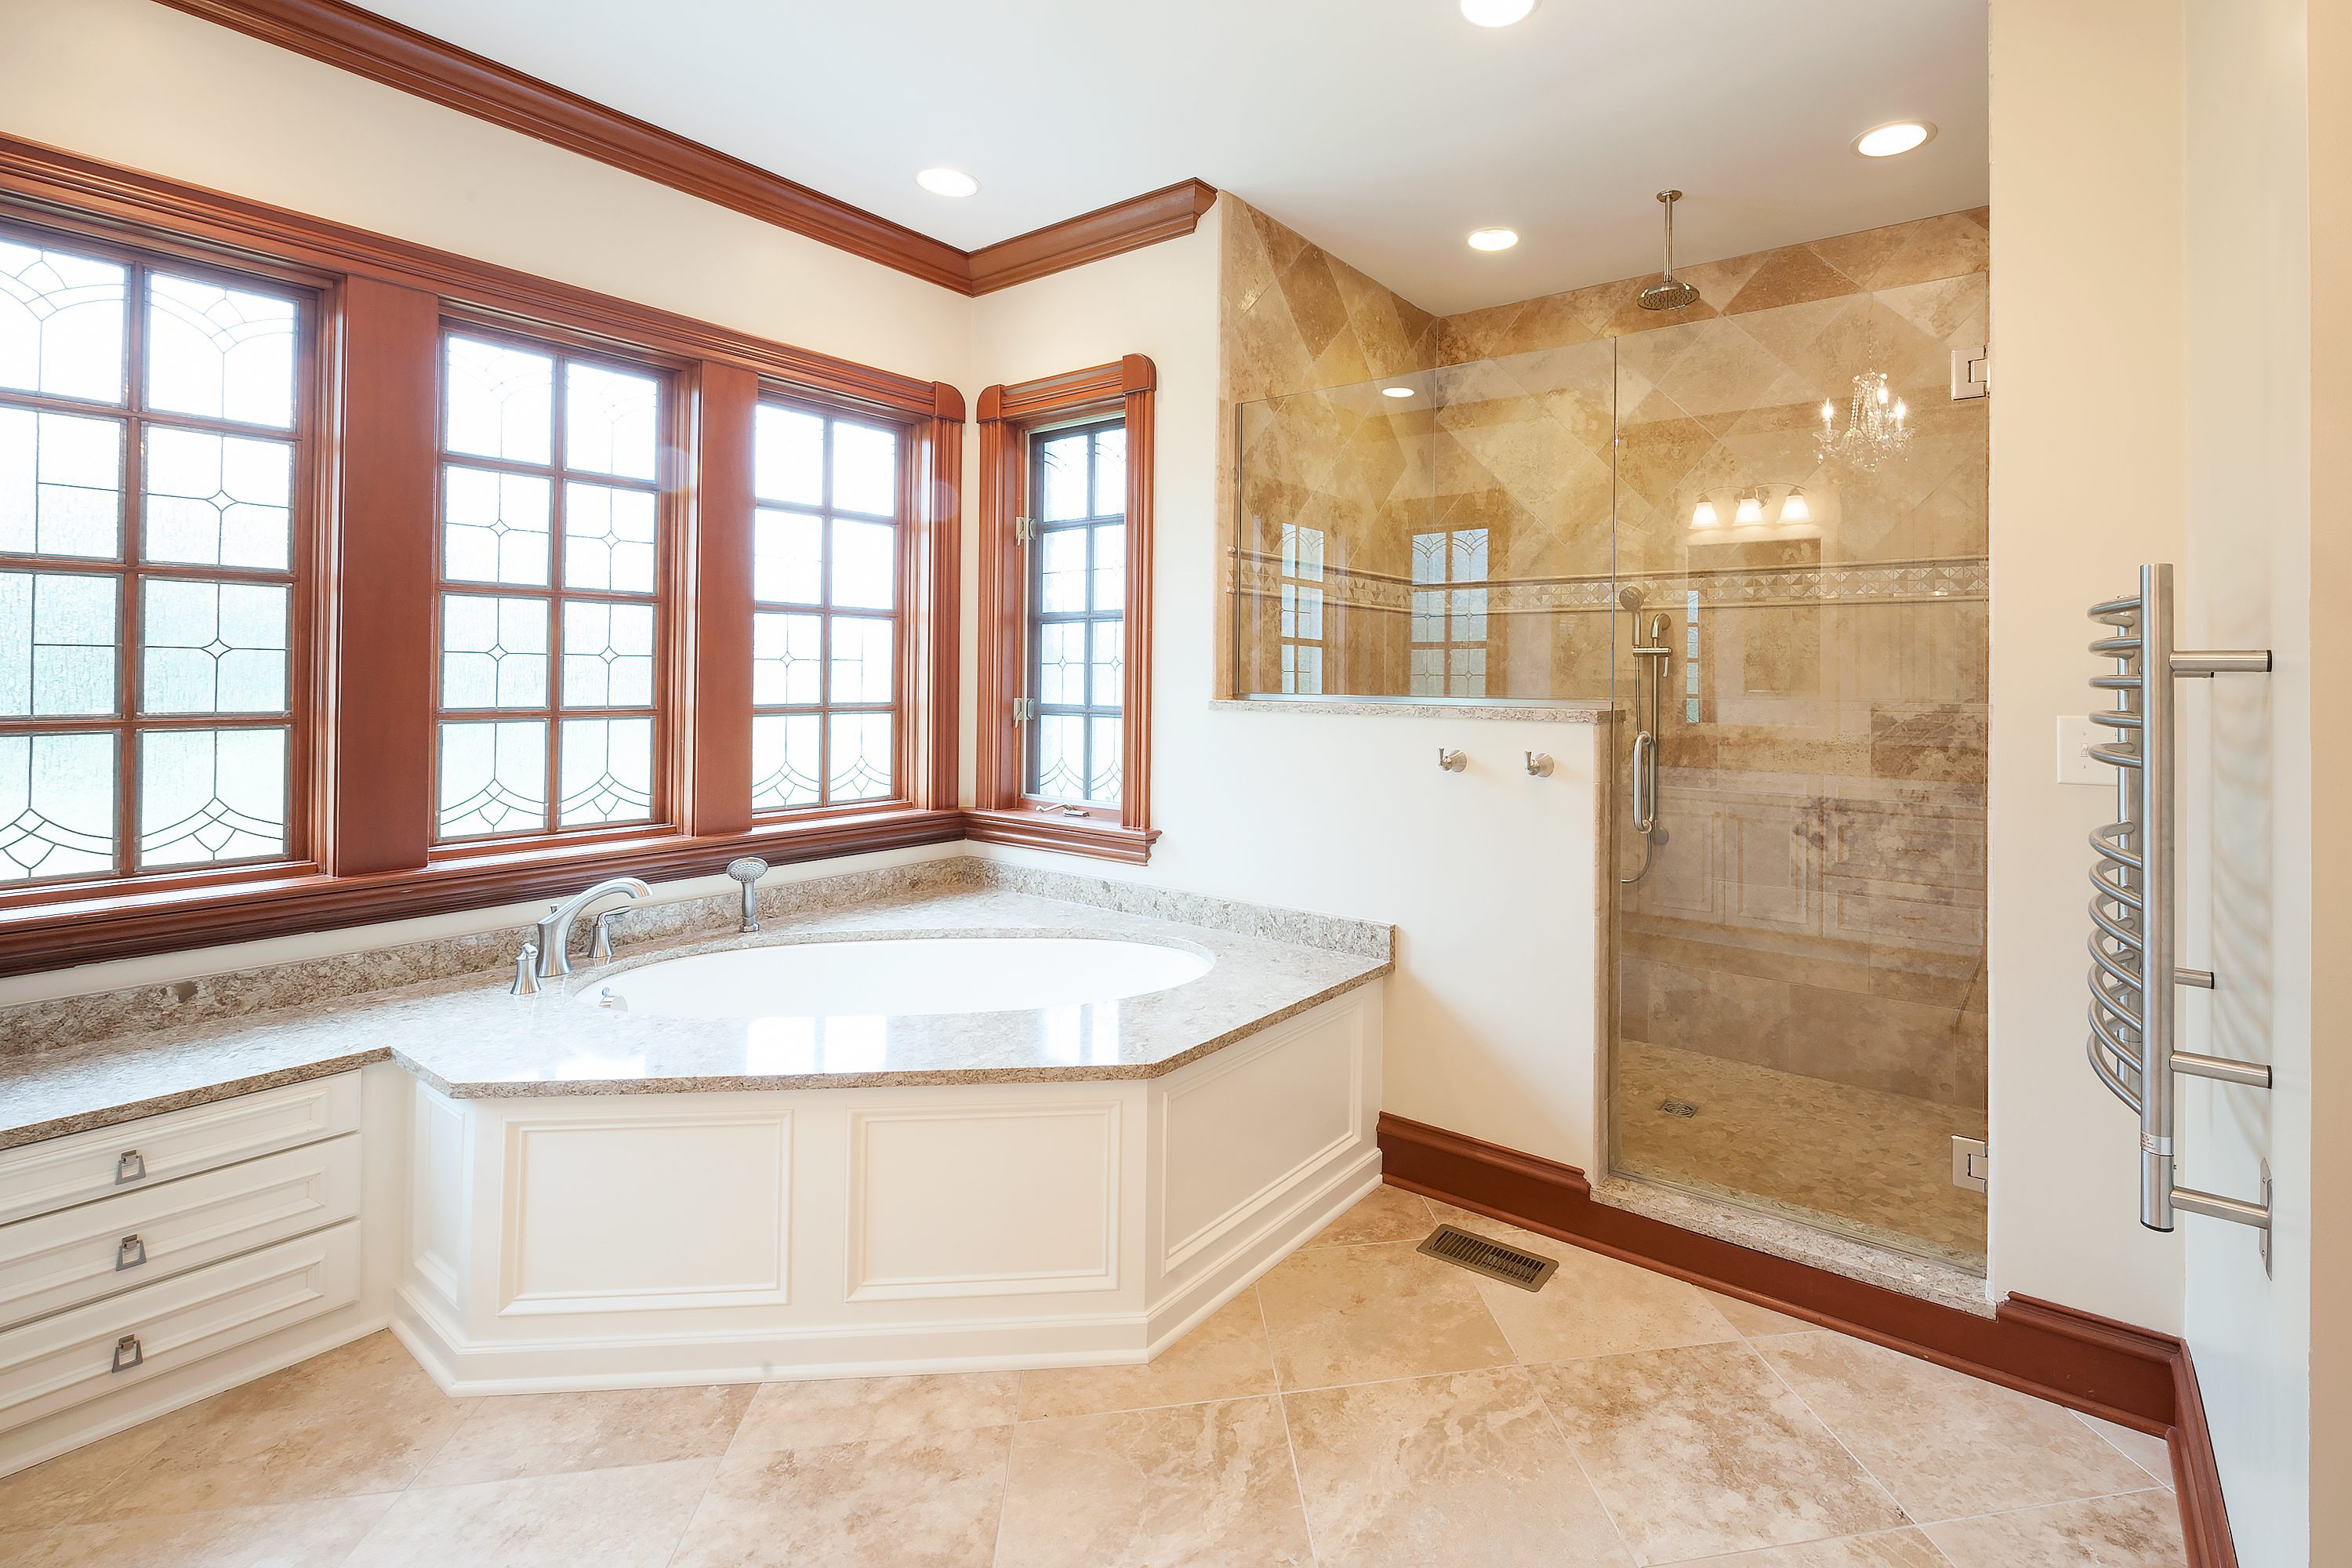 Cool Updated Look For A Traditional Master Bath Case Indy Download Free Architecture Designs Xaembritishbridgeorg